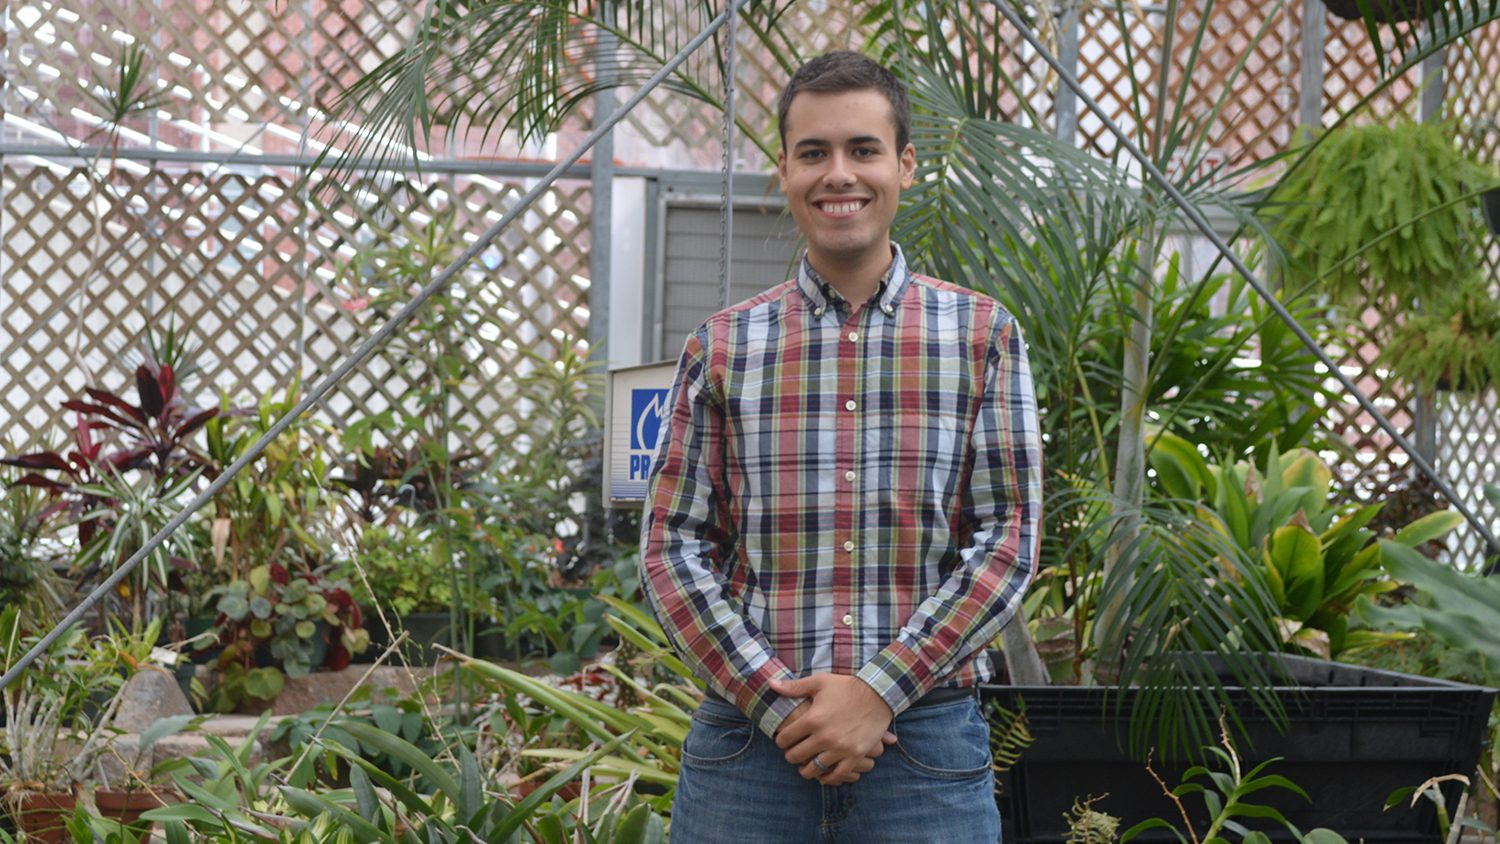 Student in NC State Conservatory (greenhouse)